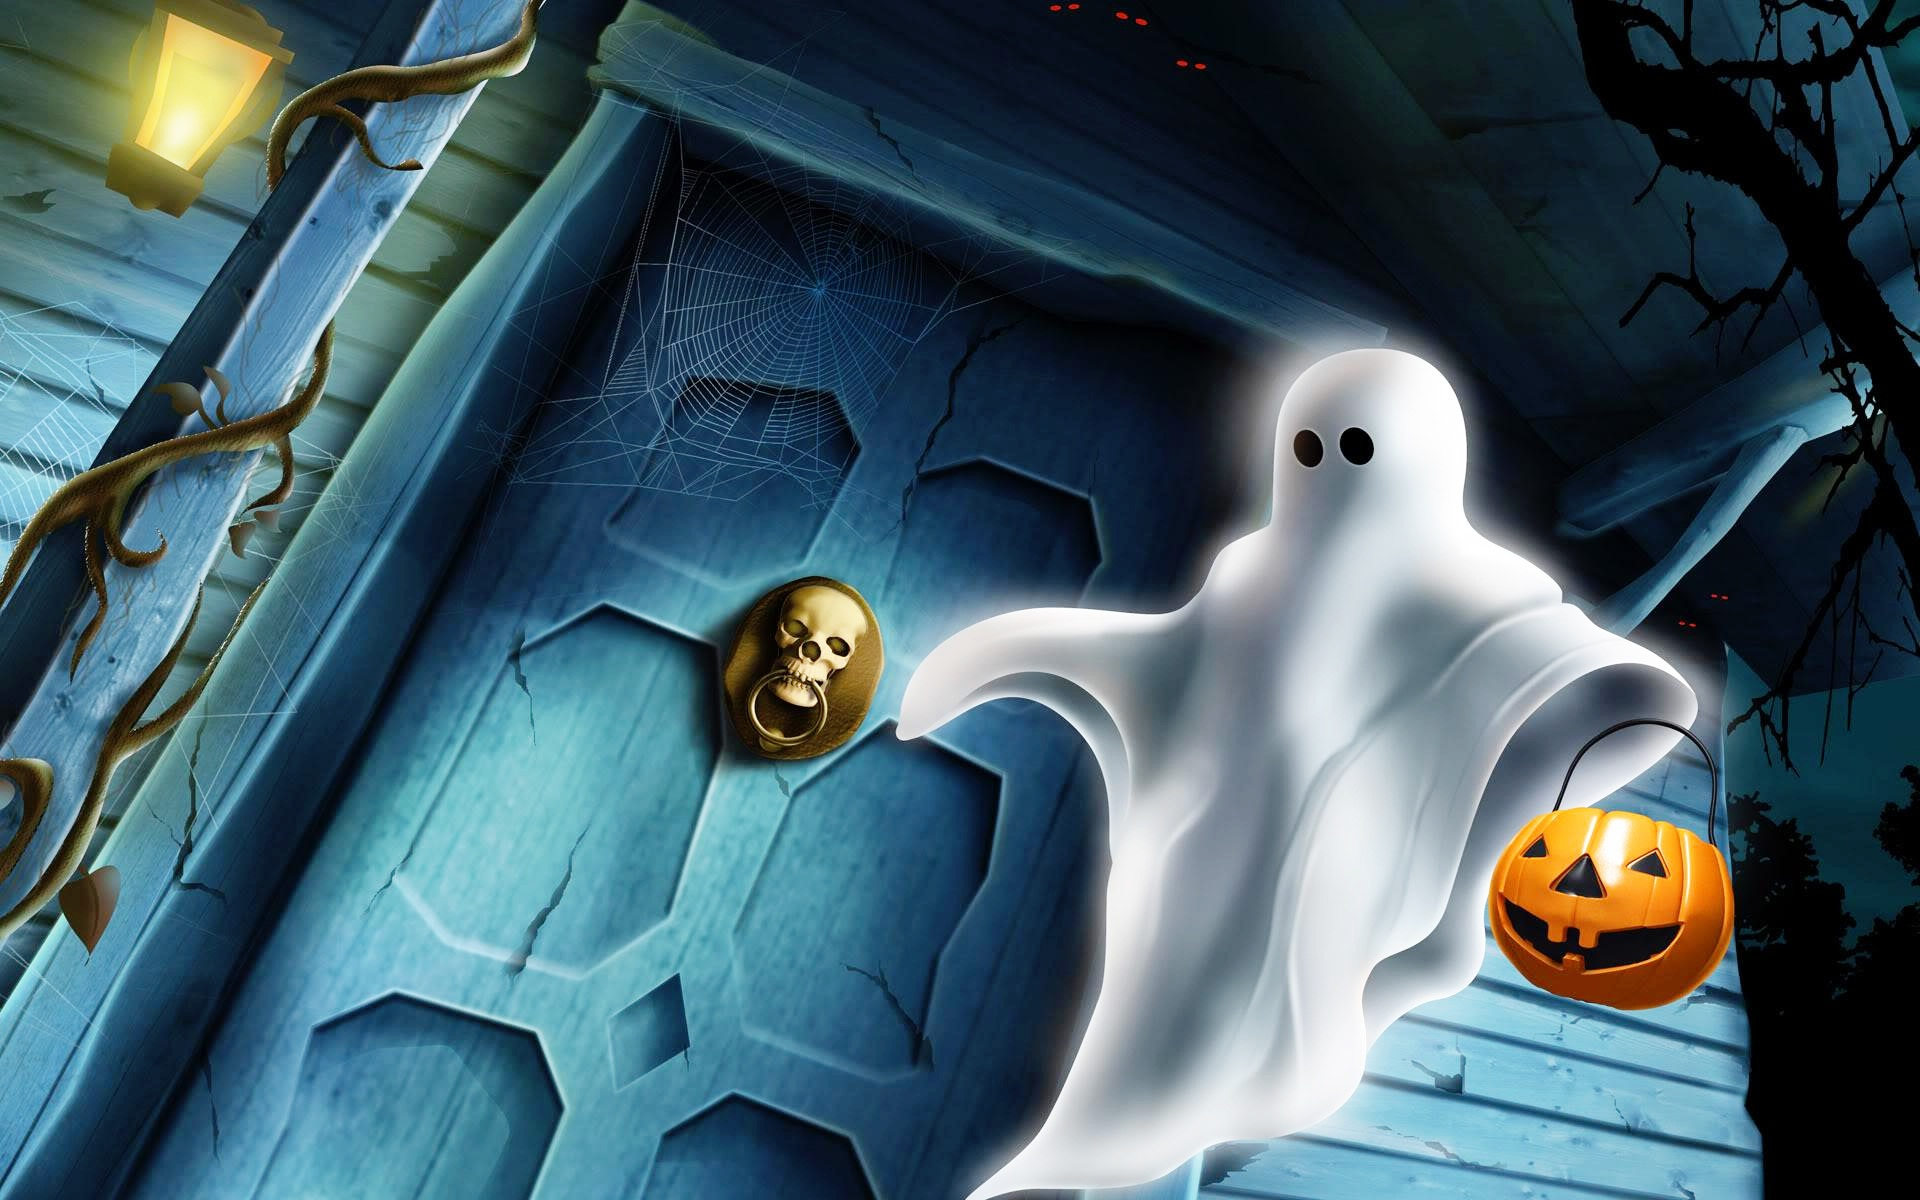 Scary Ghost Wallpaper for Halloween free download